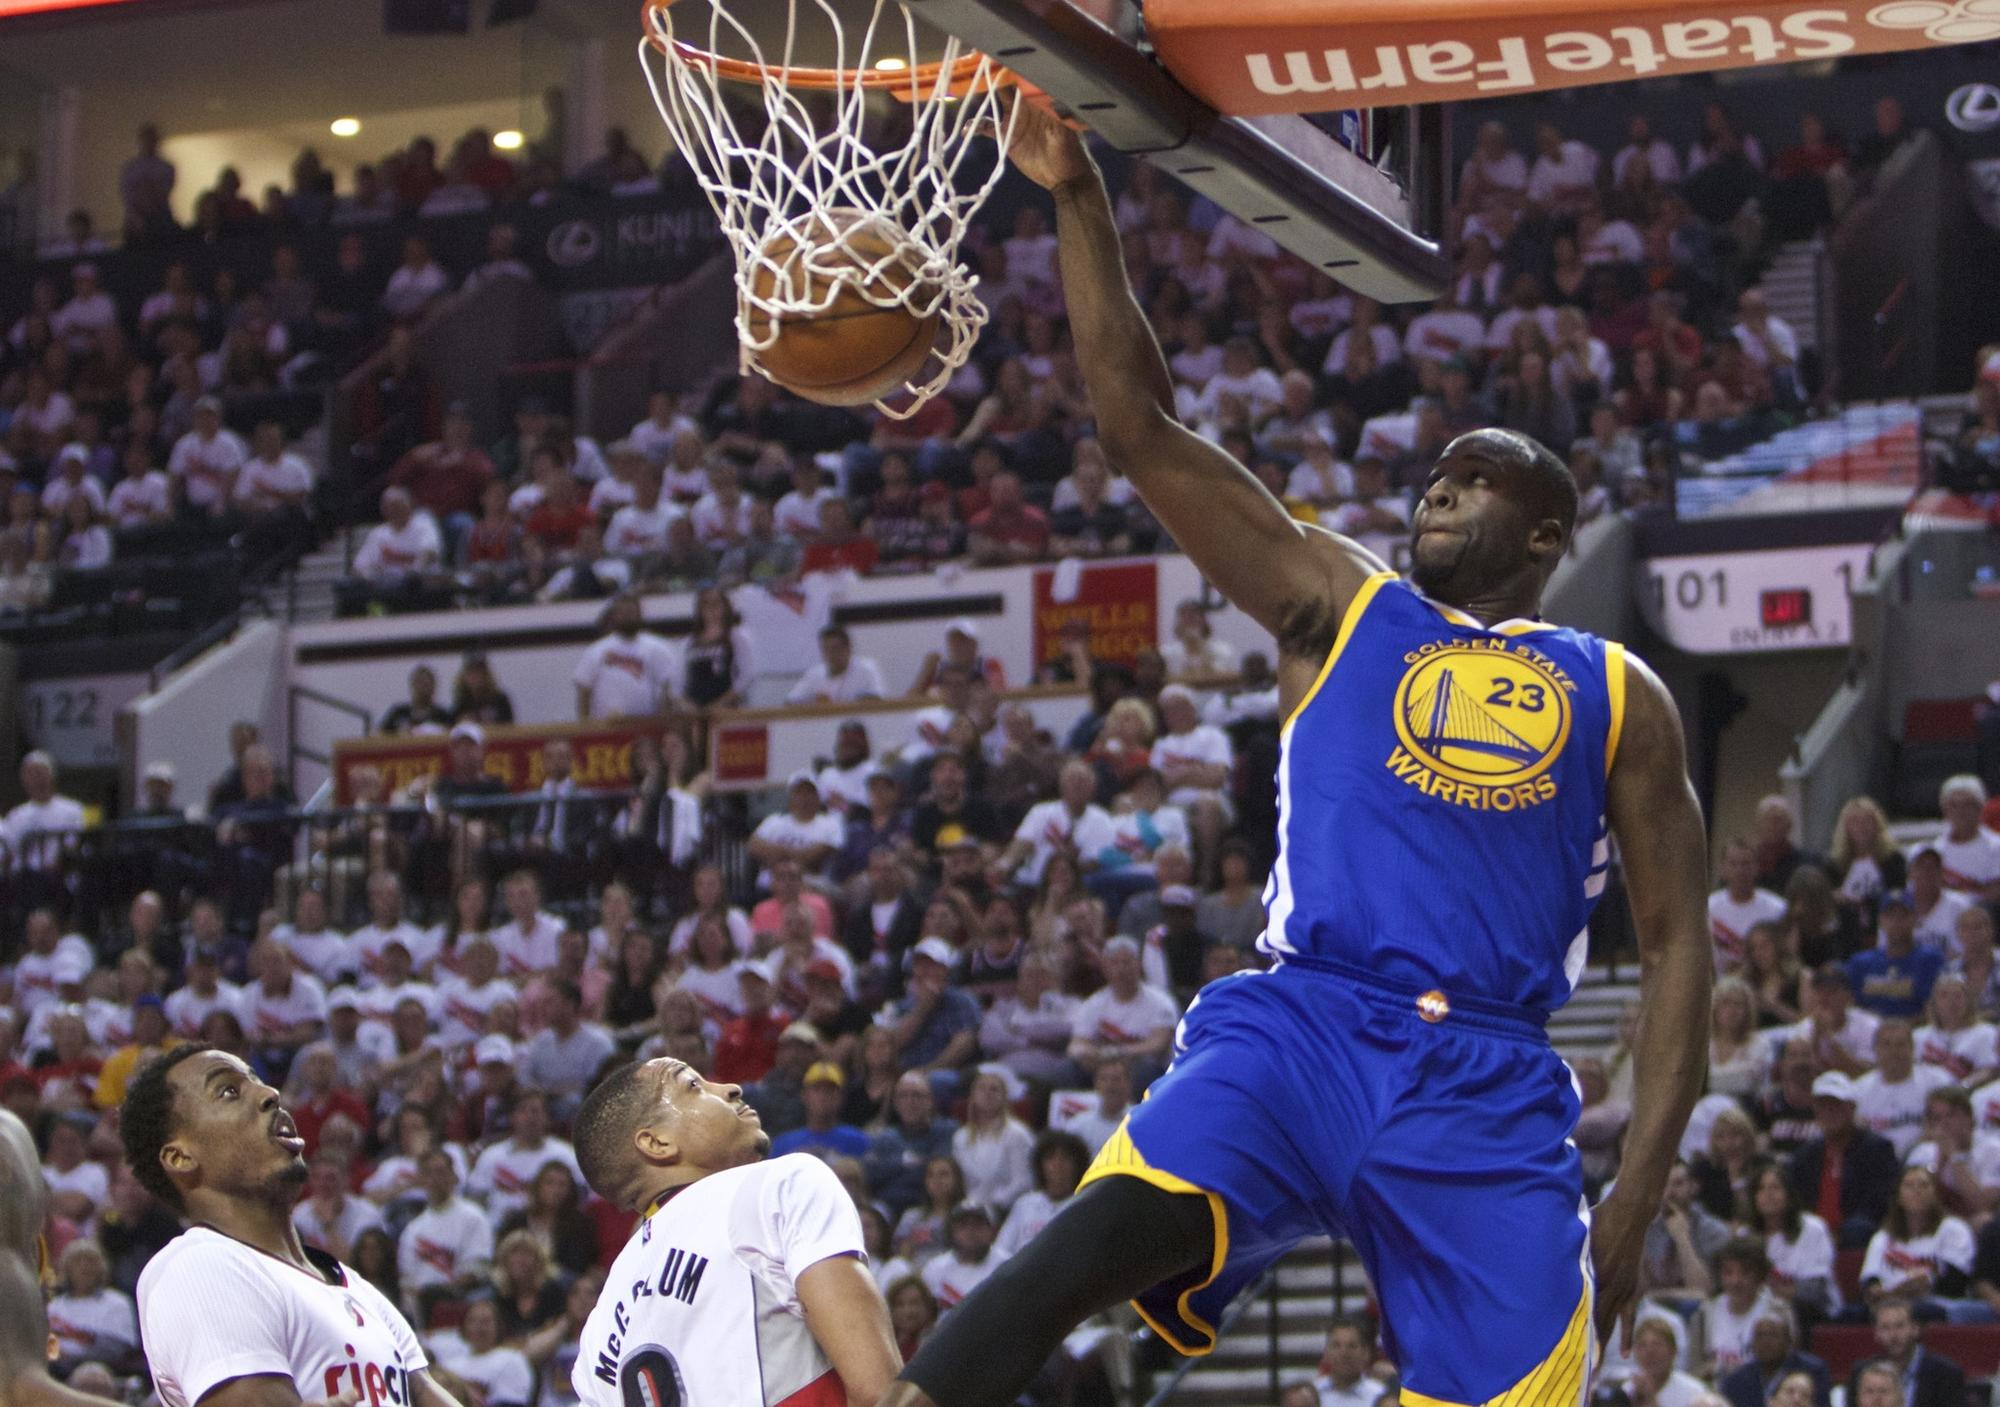 Golden State Warriors forward Draymond Green (23) dunks over Portland Trail Blazers forward Al-Farouq Aminu, left, and C.J. McCollum, on May 9, 2016, in Portland, Ore.